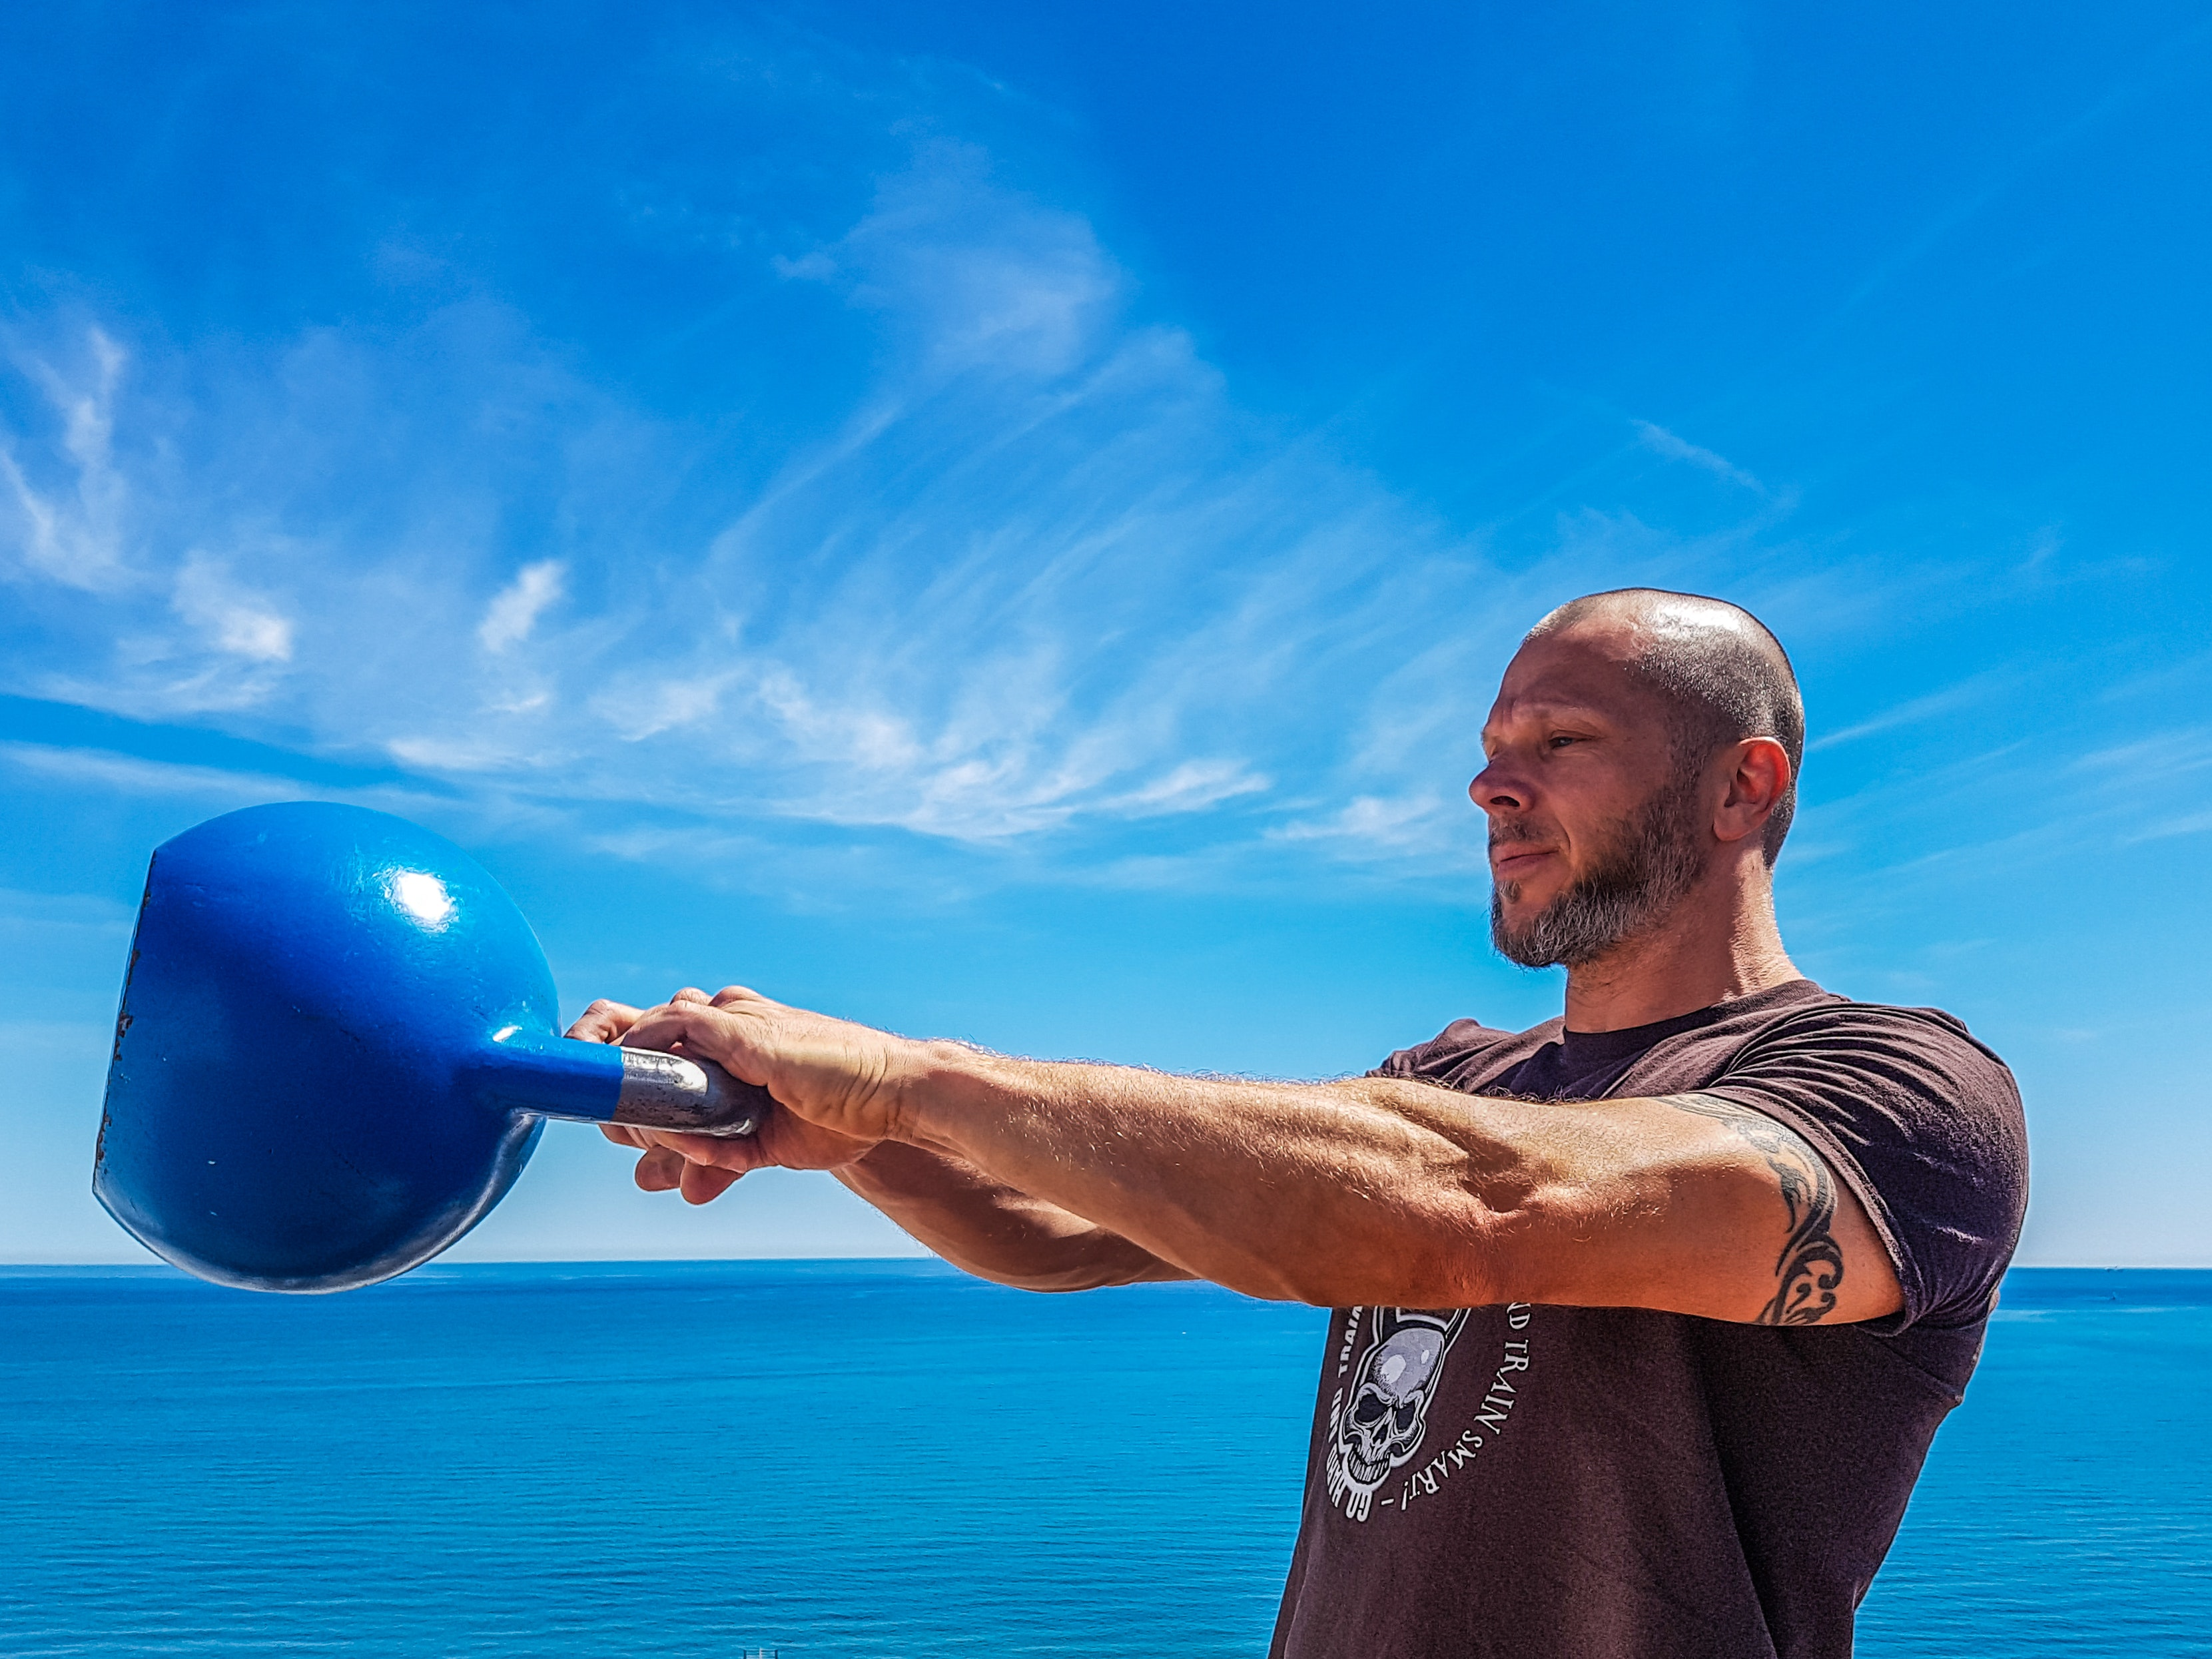 Man wearing black shirt holding kettle bell near body of water photo